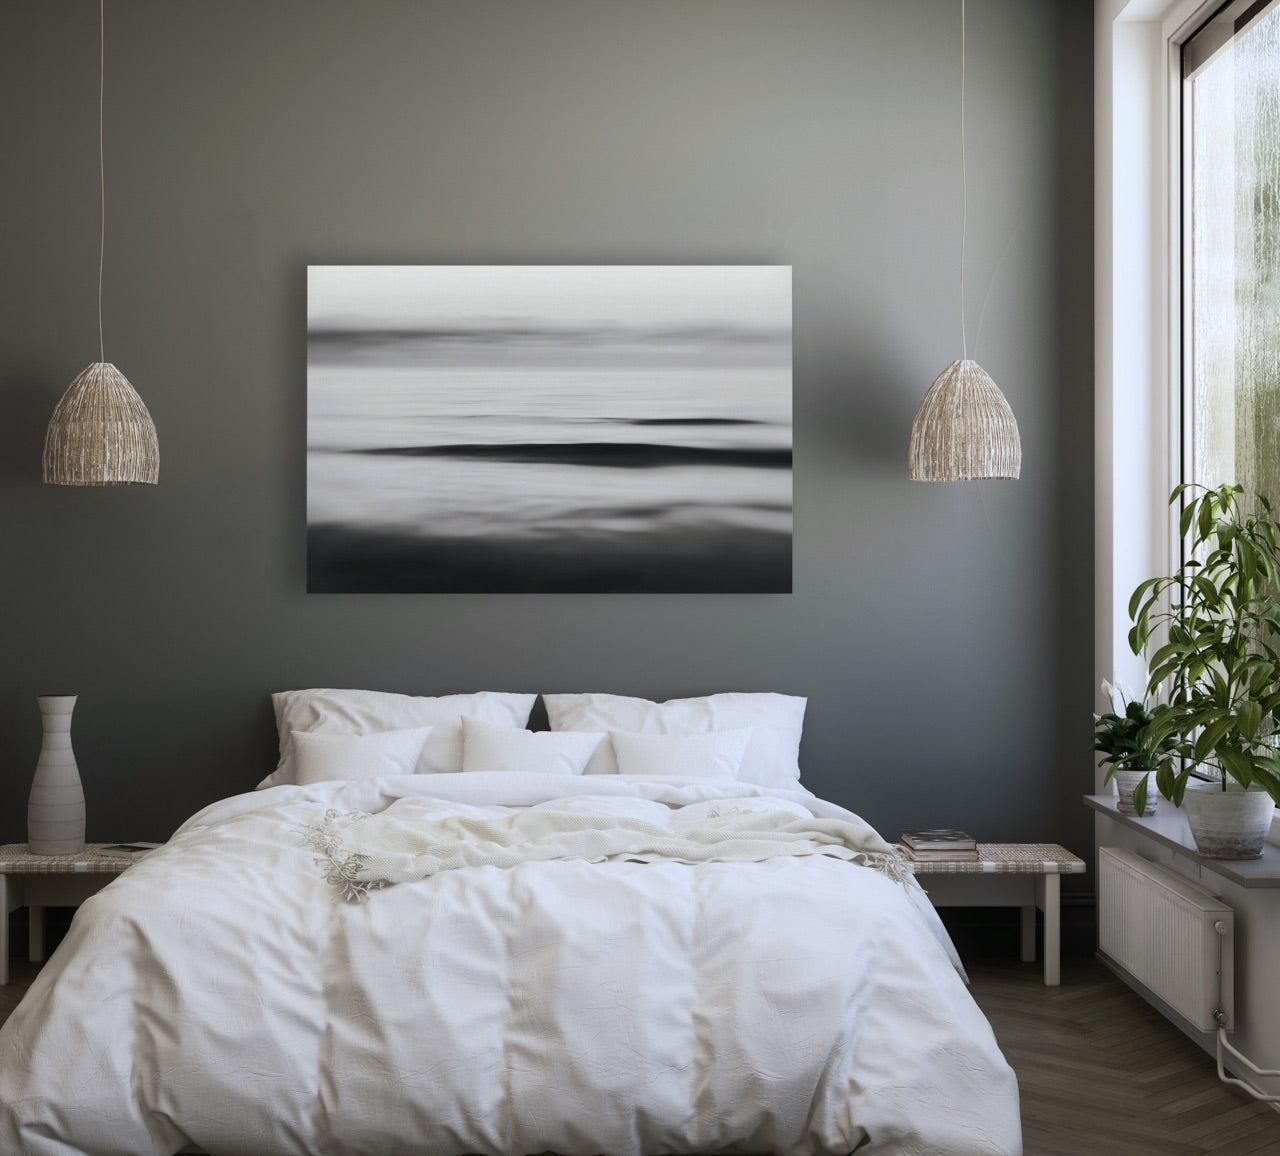 Black and white themed bedroom with abstract art